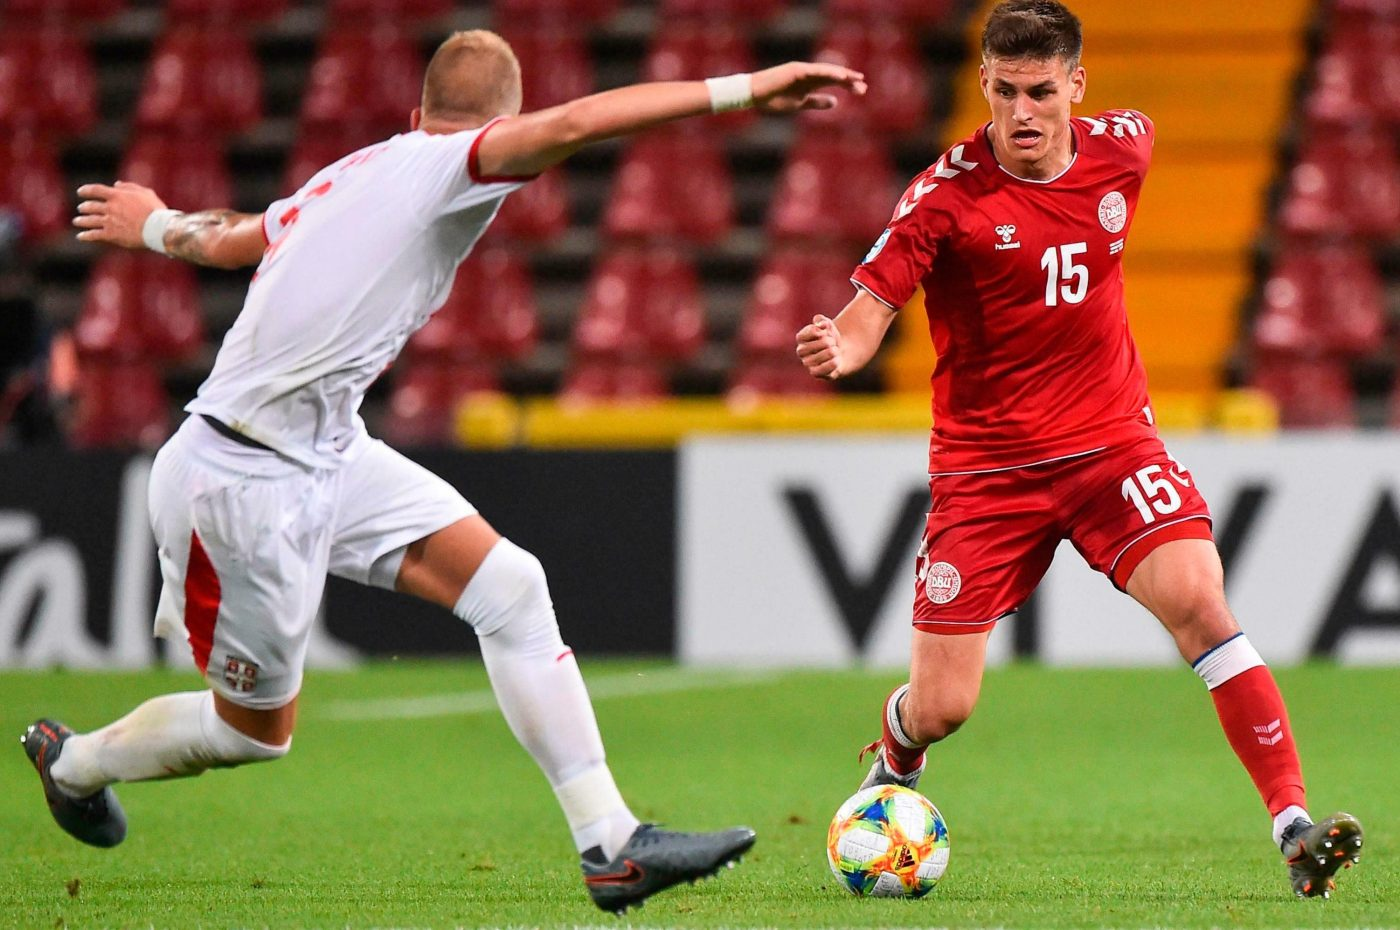 Burnley ready to make £7m swoop for Danish right-back Joakim Maehle